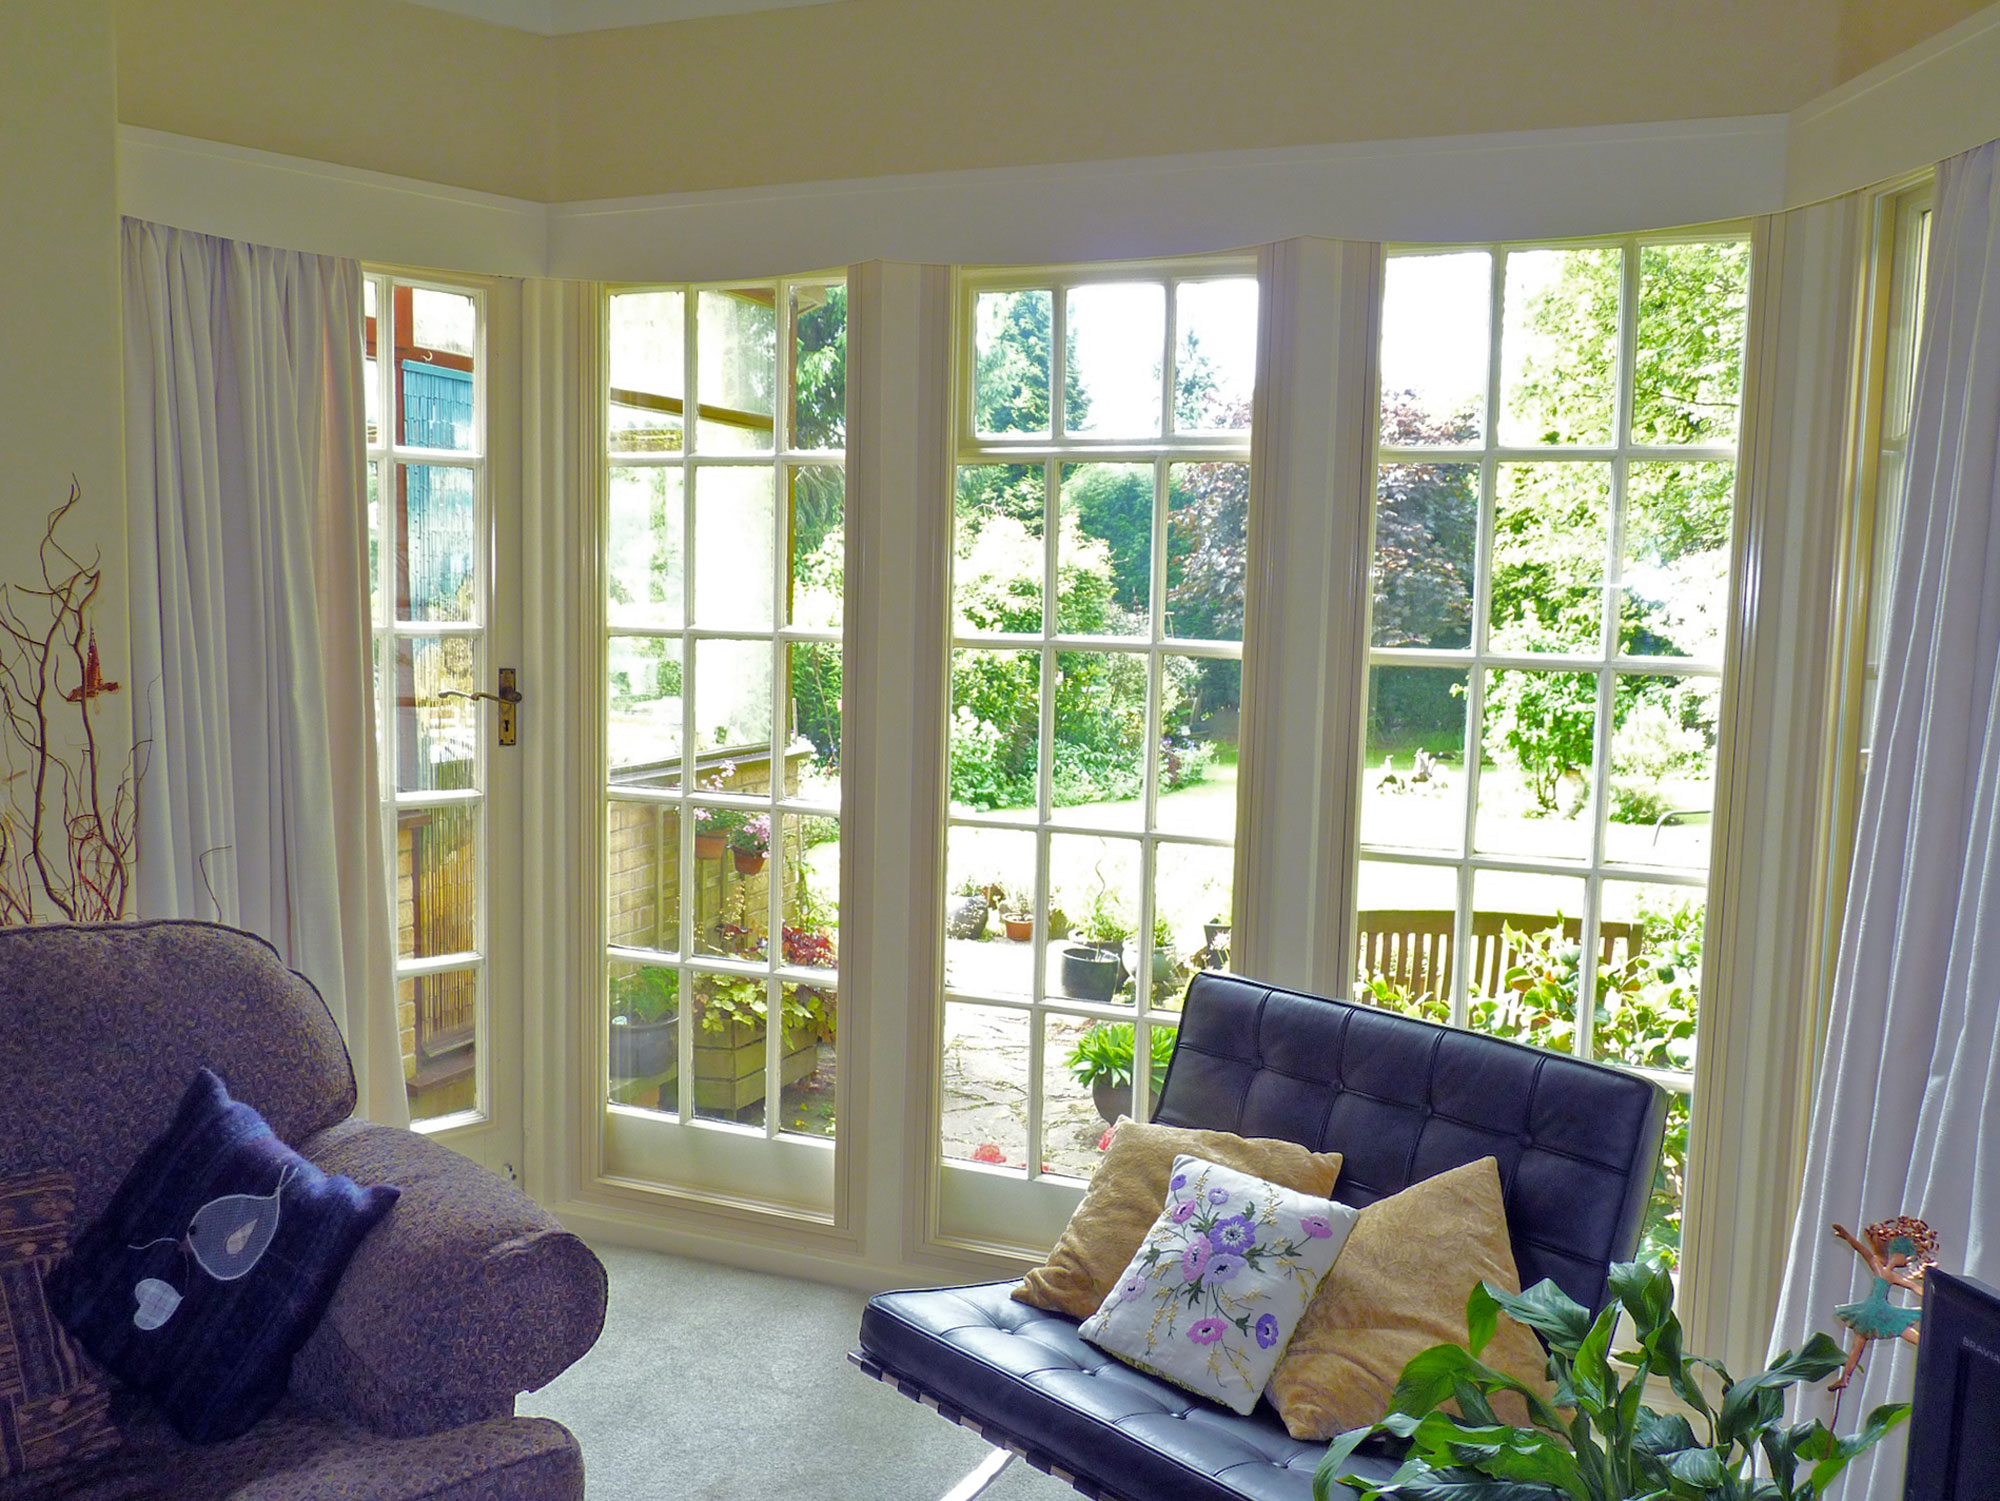 How to clean house windows - Clean And Clear Windows